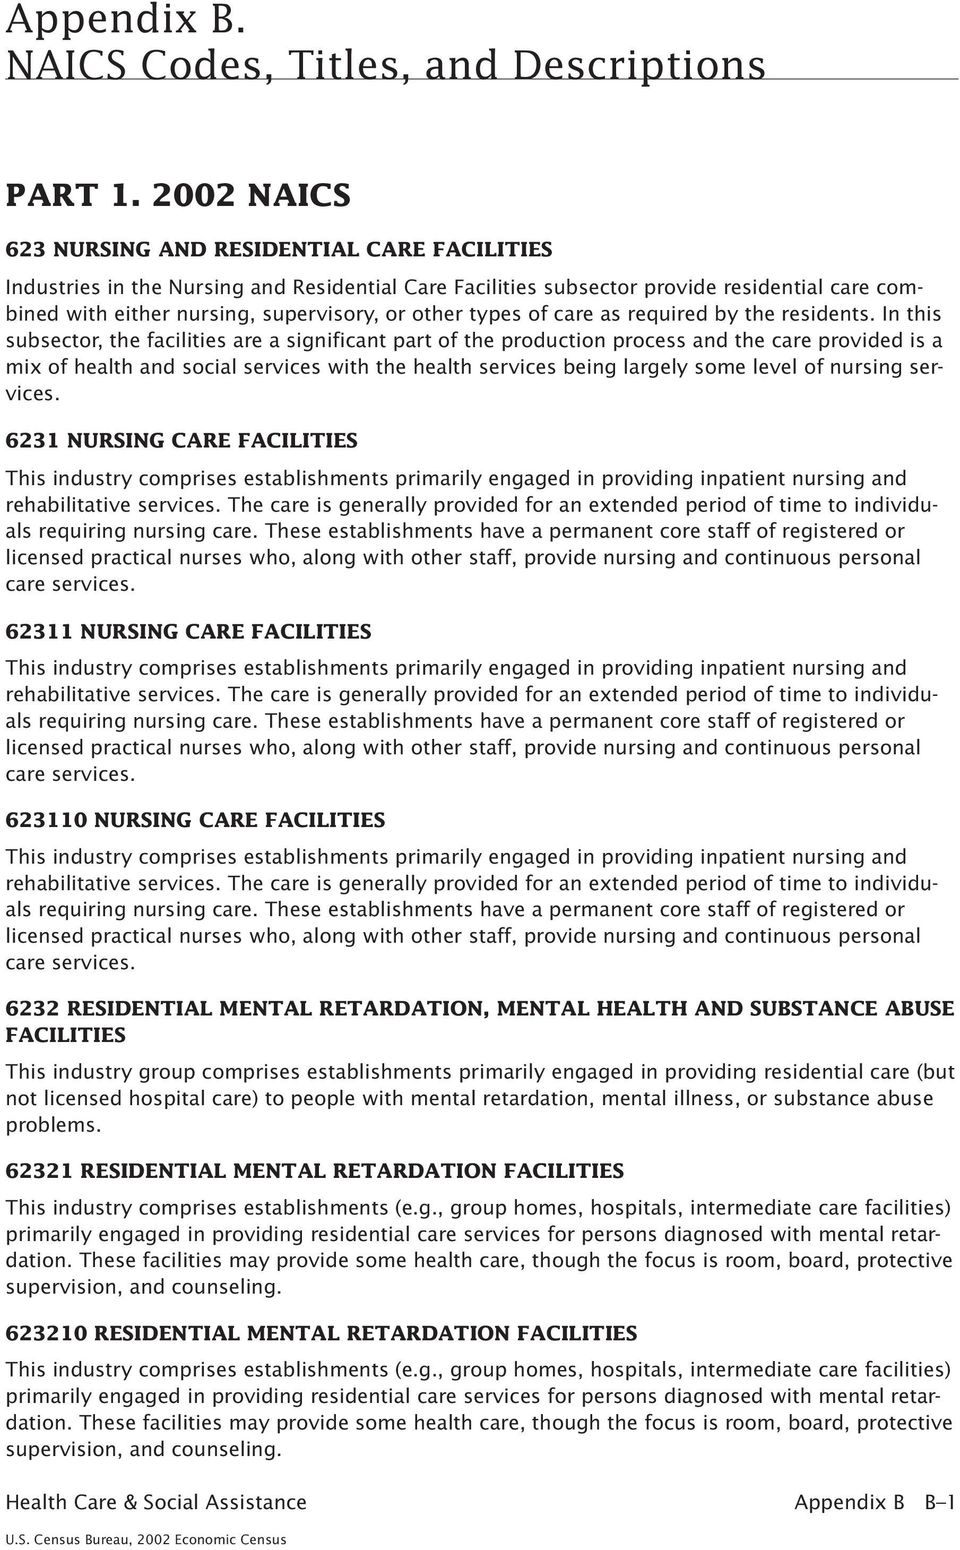 types of care as required by the residents.